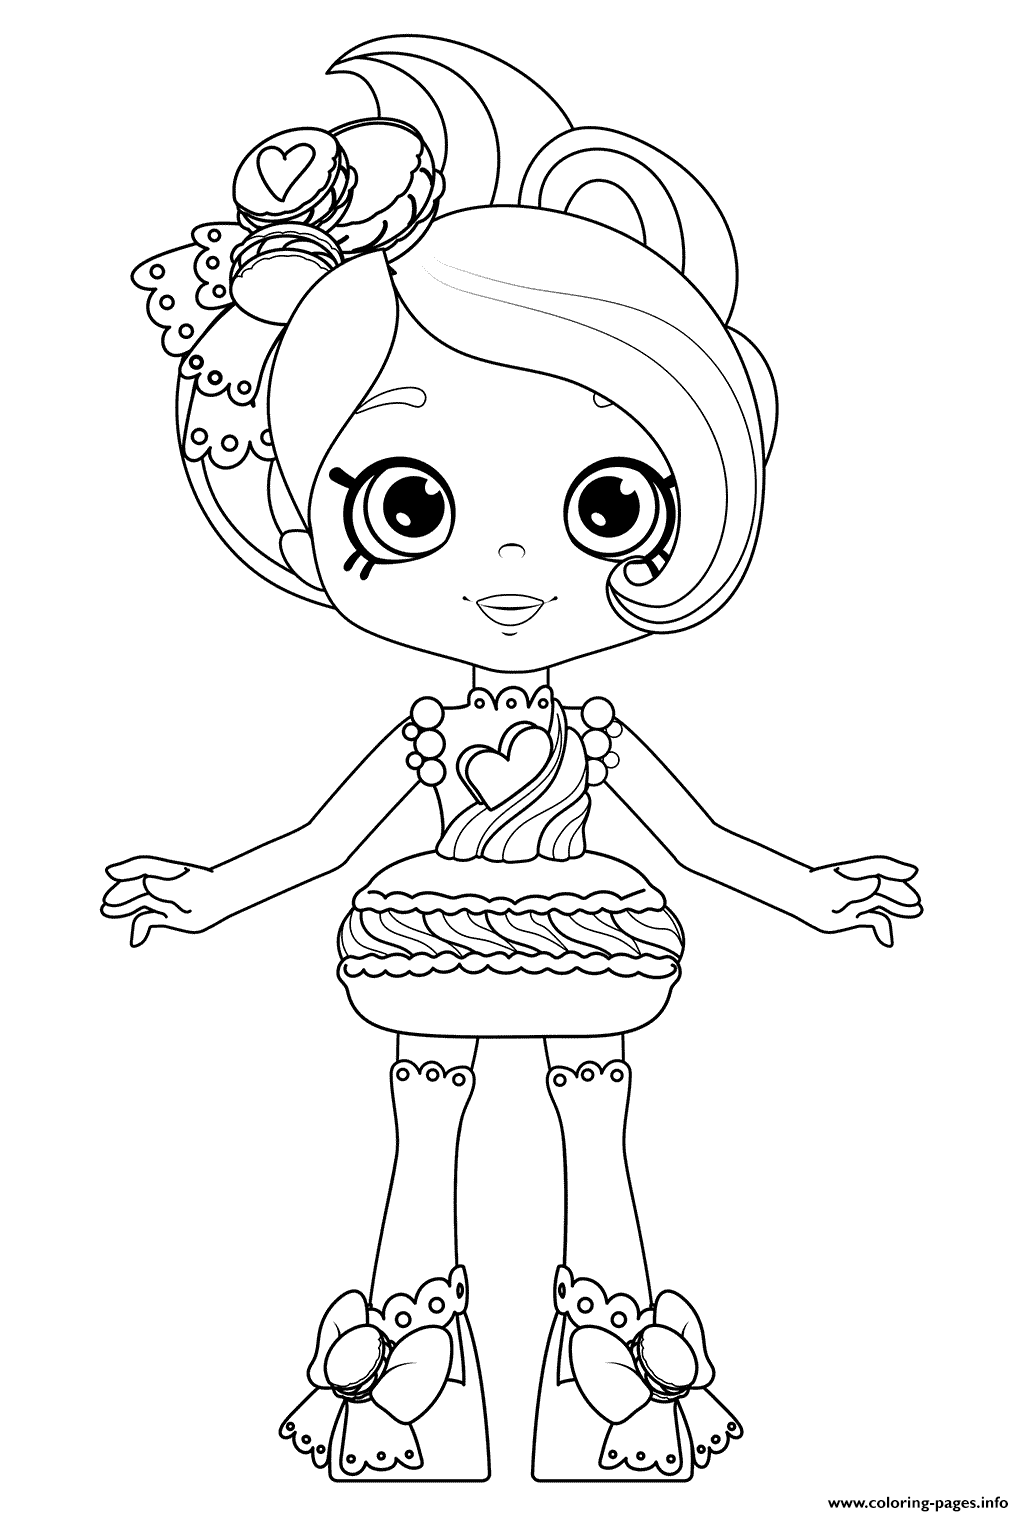 Shopkins Happy Places Coloring Pages At Getdrawings Com Free For